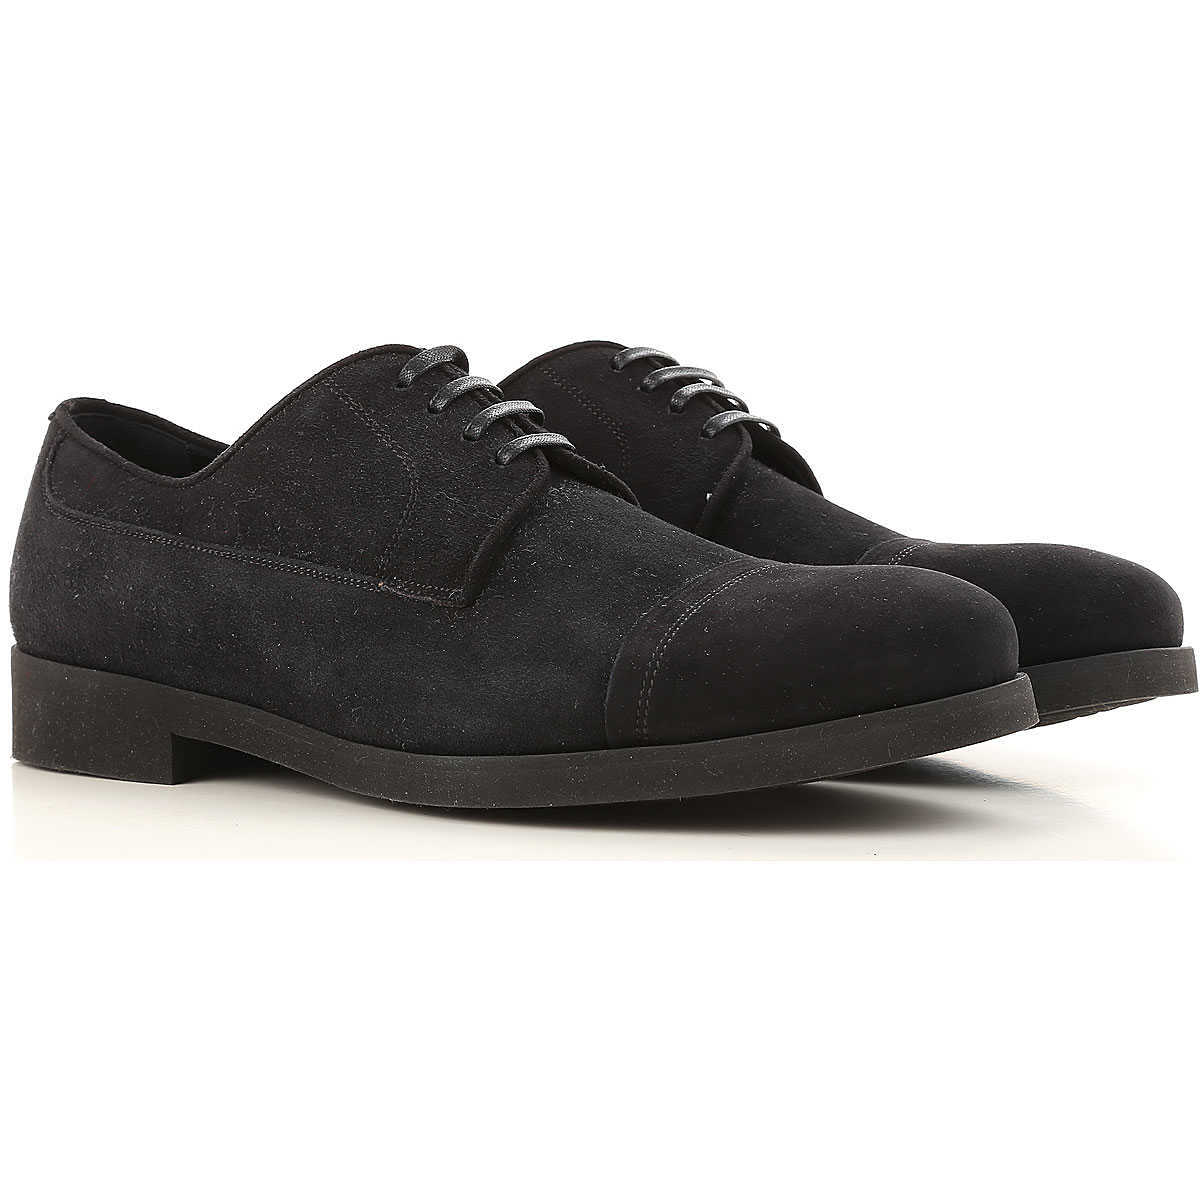 Dolce & Gabbana Lace Up Shoes for Men Oxfords Derbies and Brogues On Sale in Outlet DK - GOOFASH - Mens FORMAL SHOES